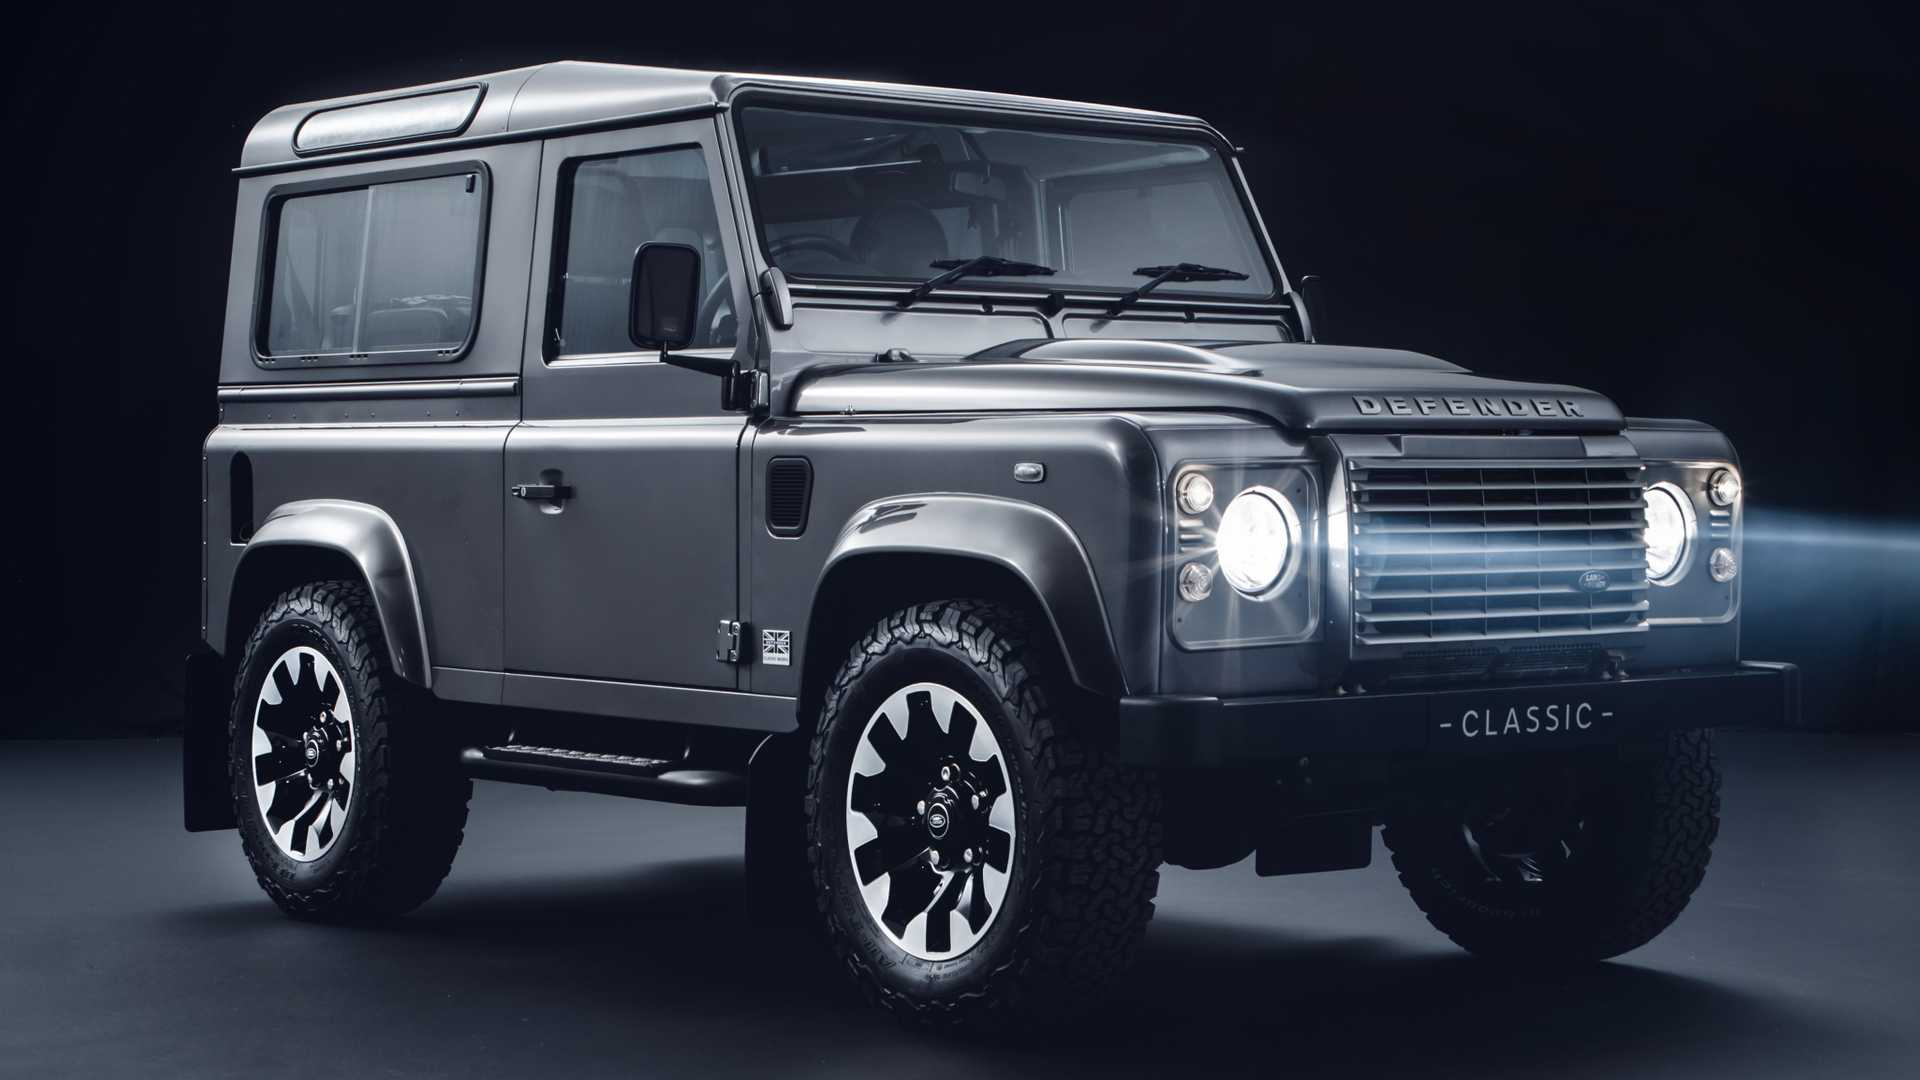 land-rover-classic-upgrades-old-defender-1994-2016-4